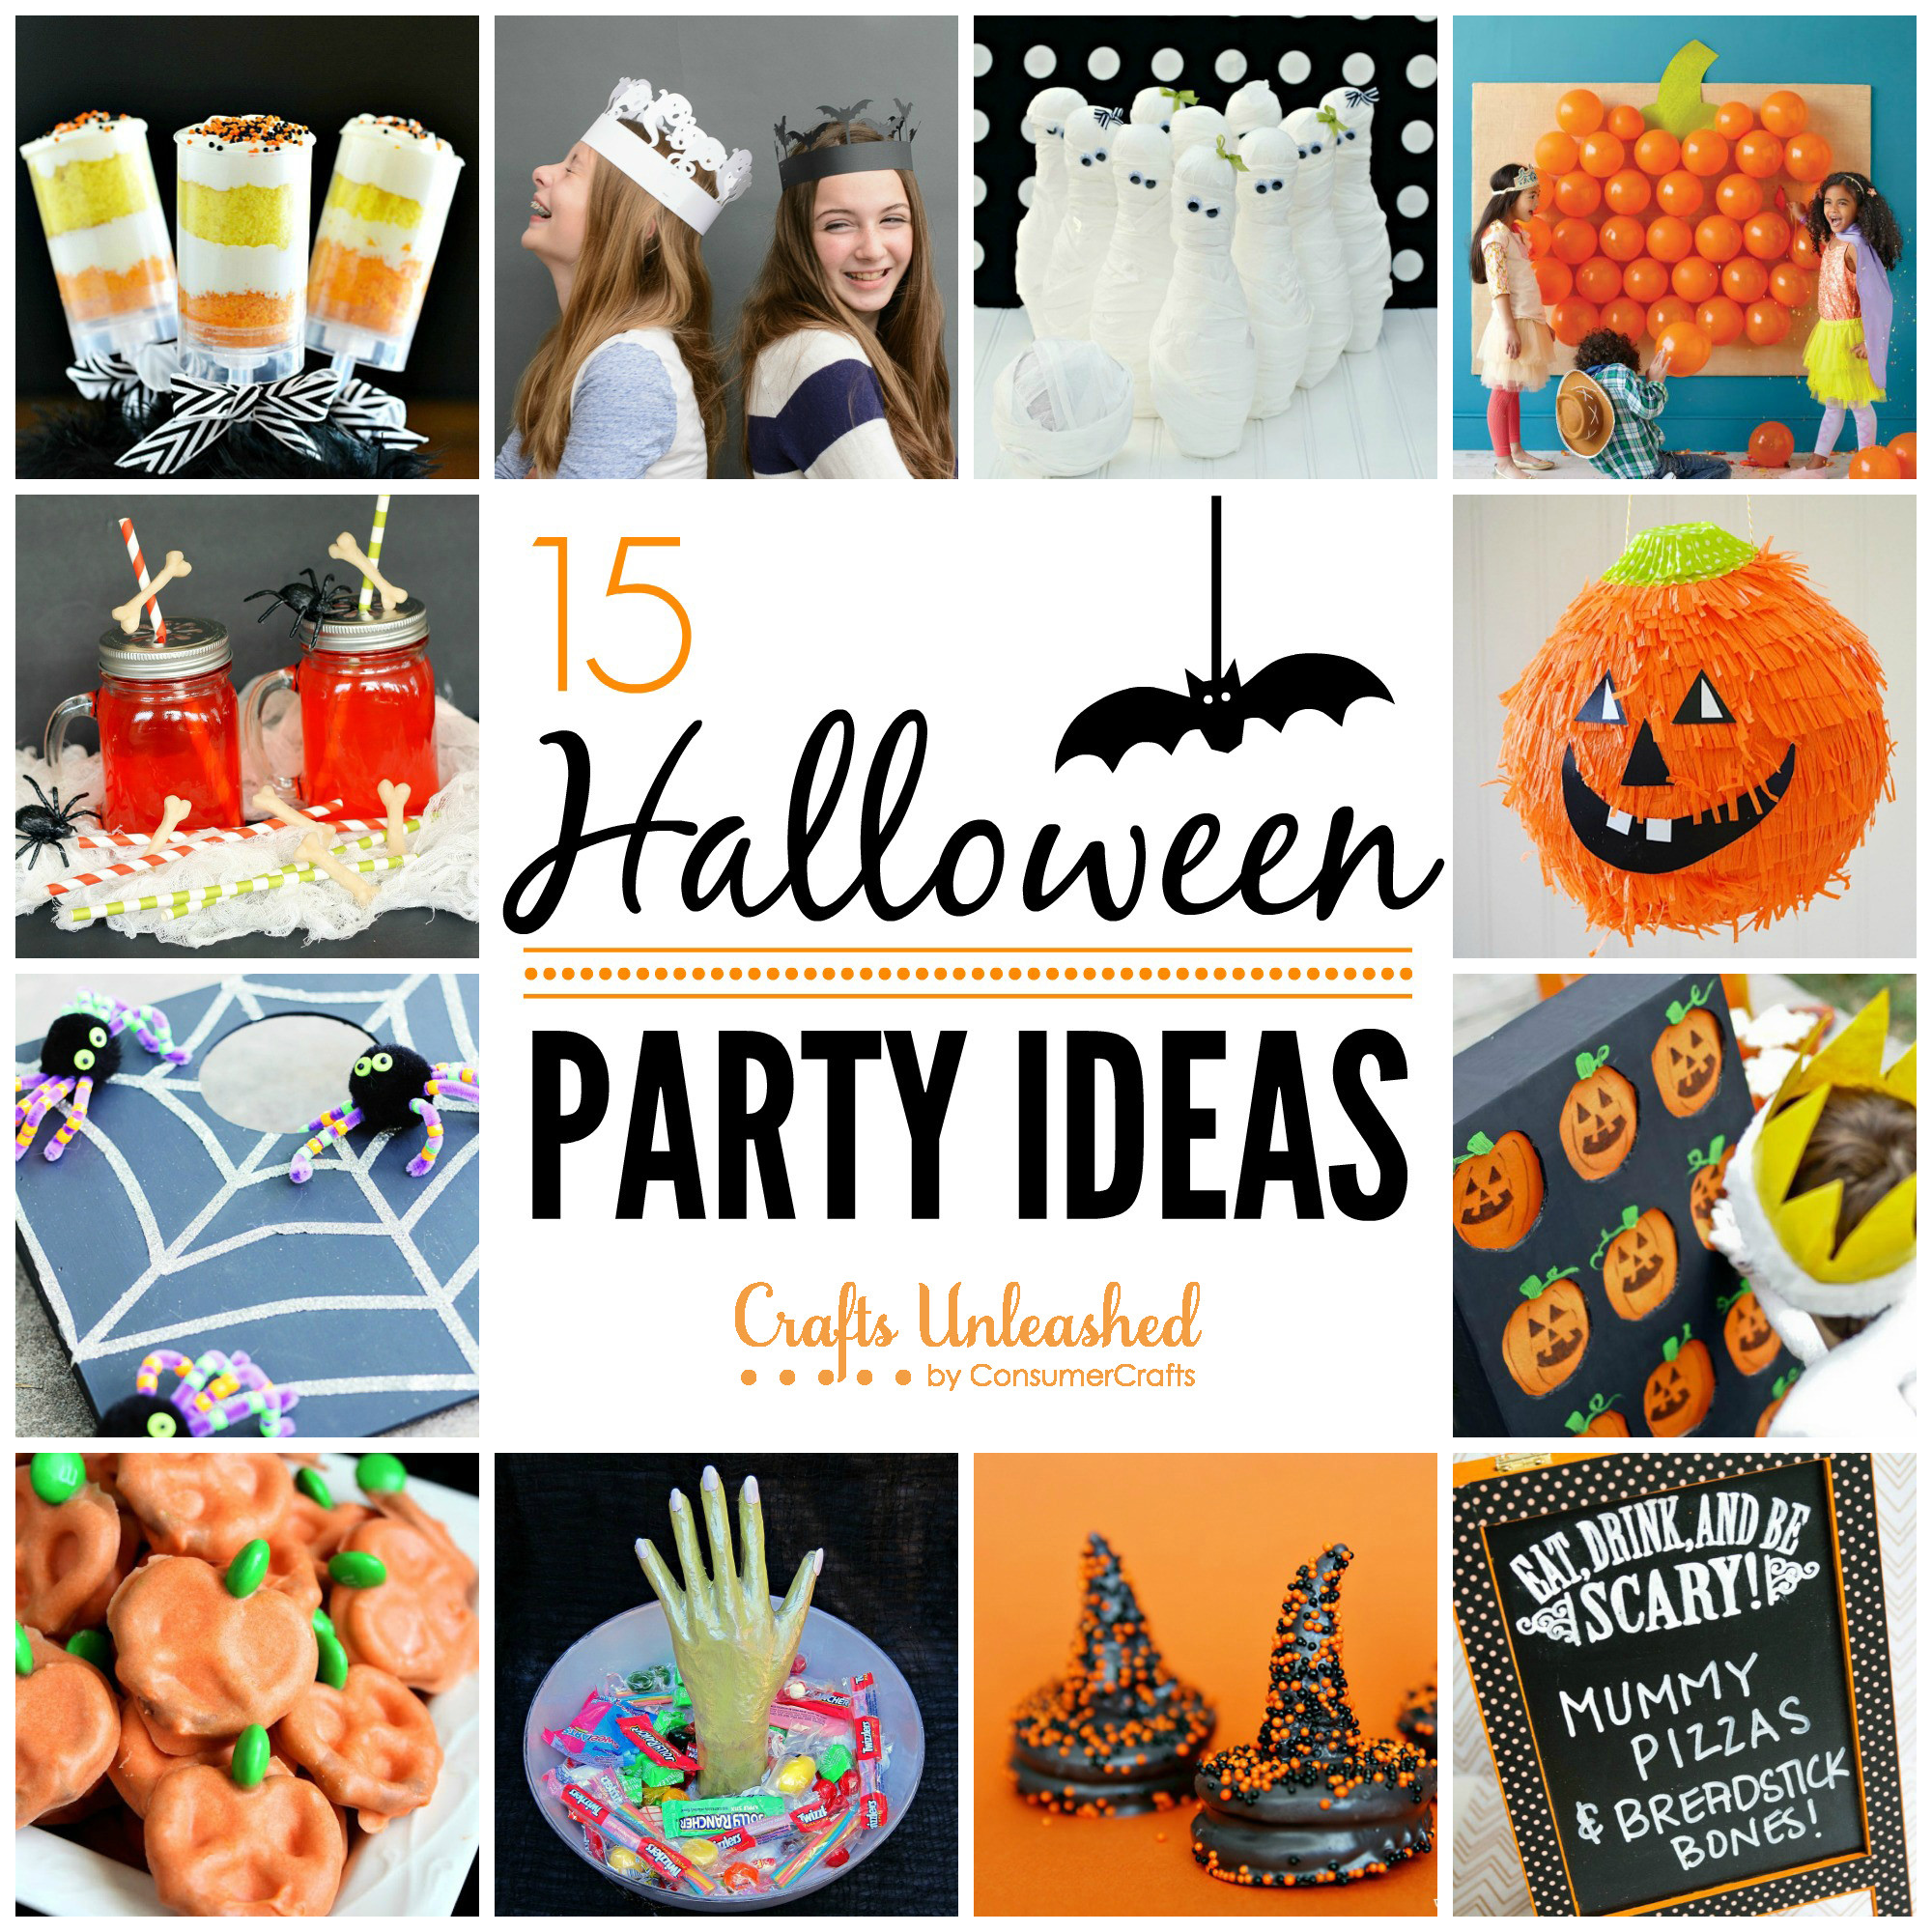 Diy Halloween Party Ideas  Halloween Party Ideas Crafts Unleashed